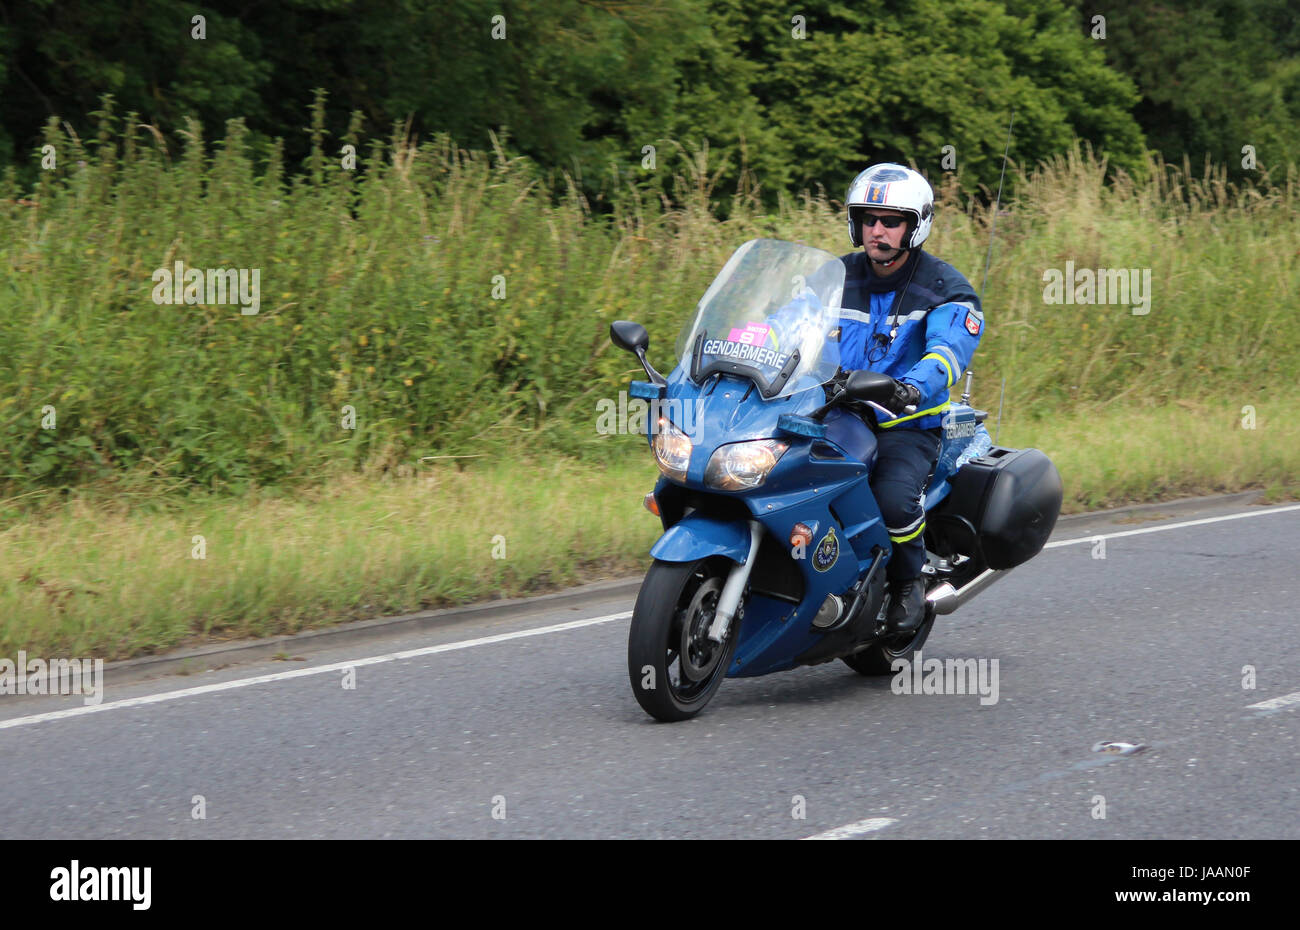 A French Gendarmerie motorcyclist riding along a British road, during stage 3 of the Tour de France, in 2014. - Stock Image